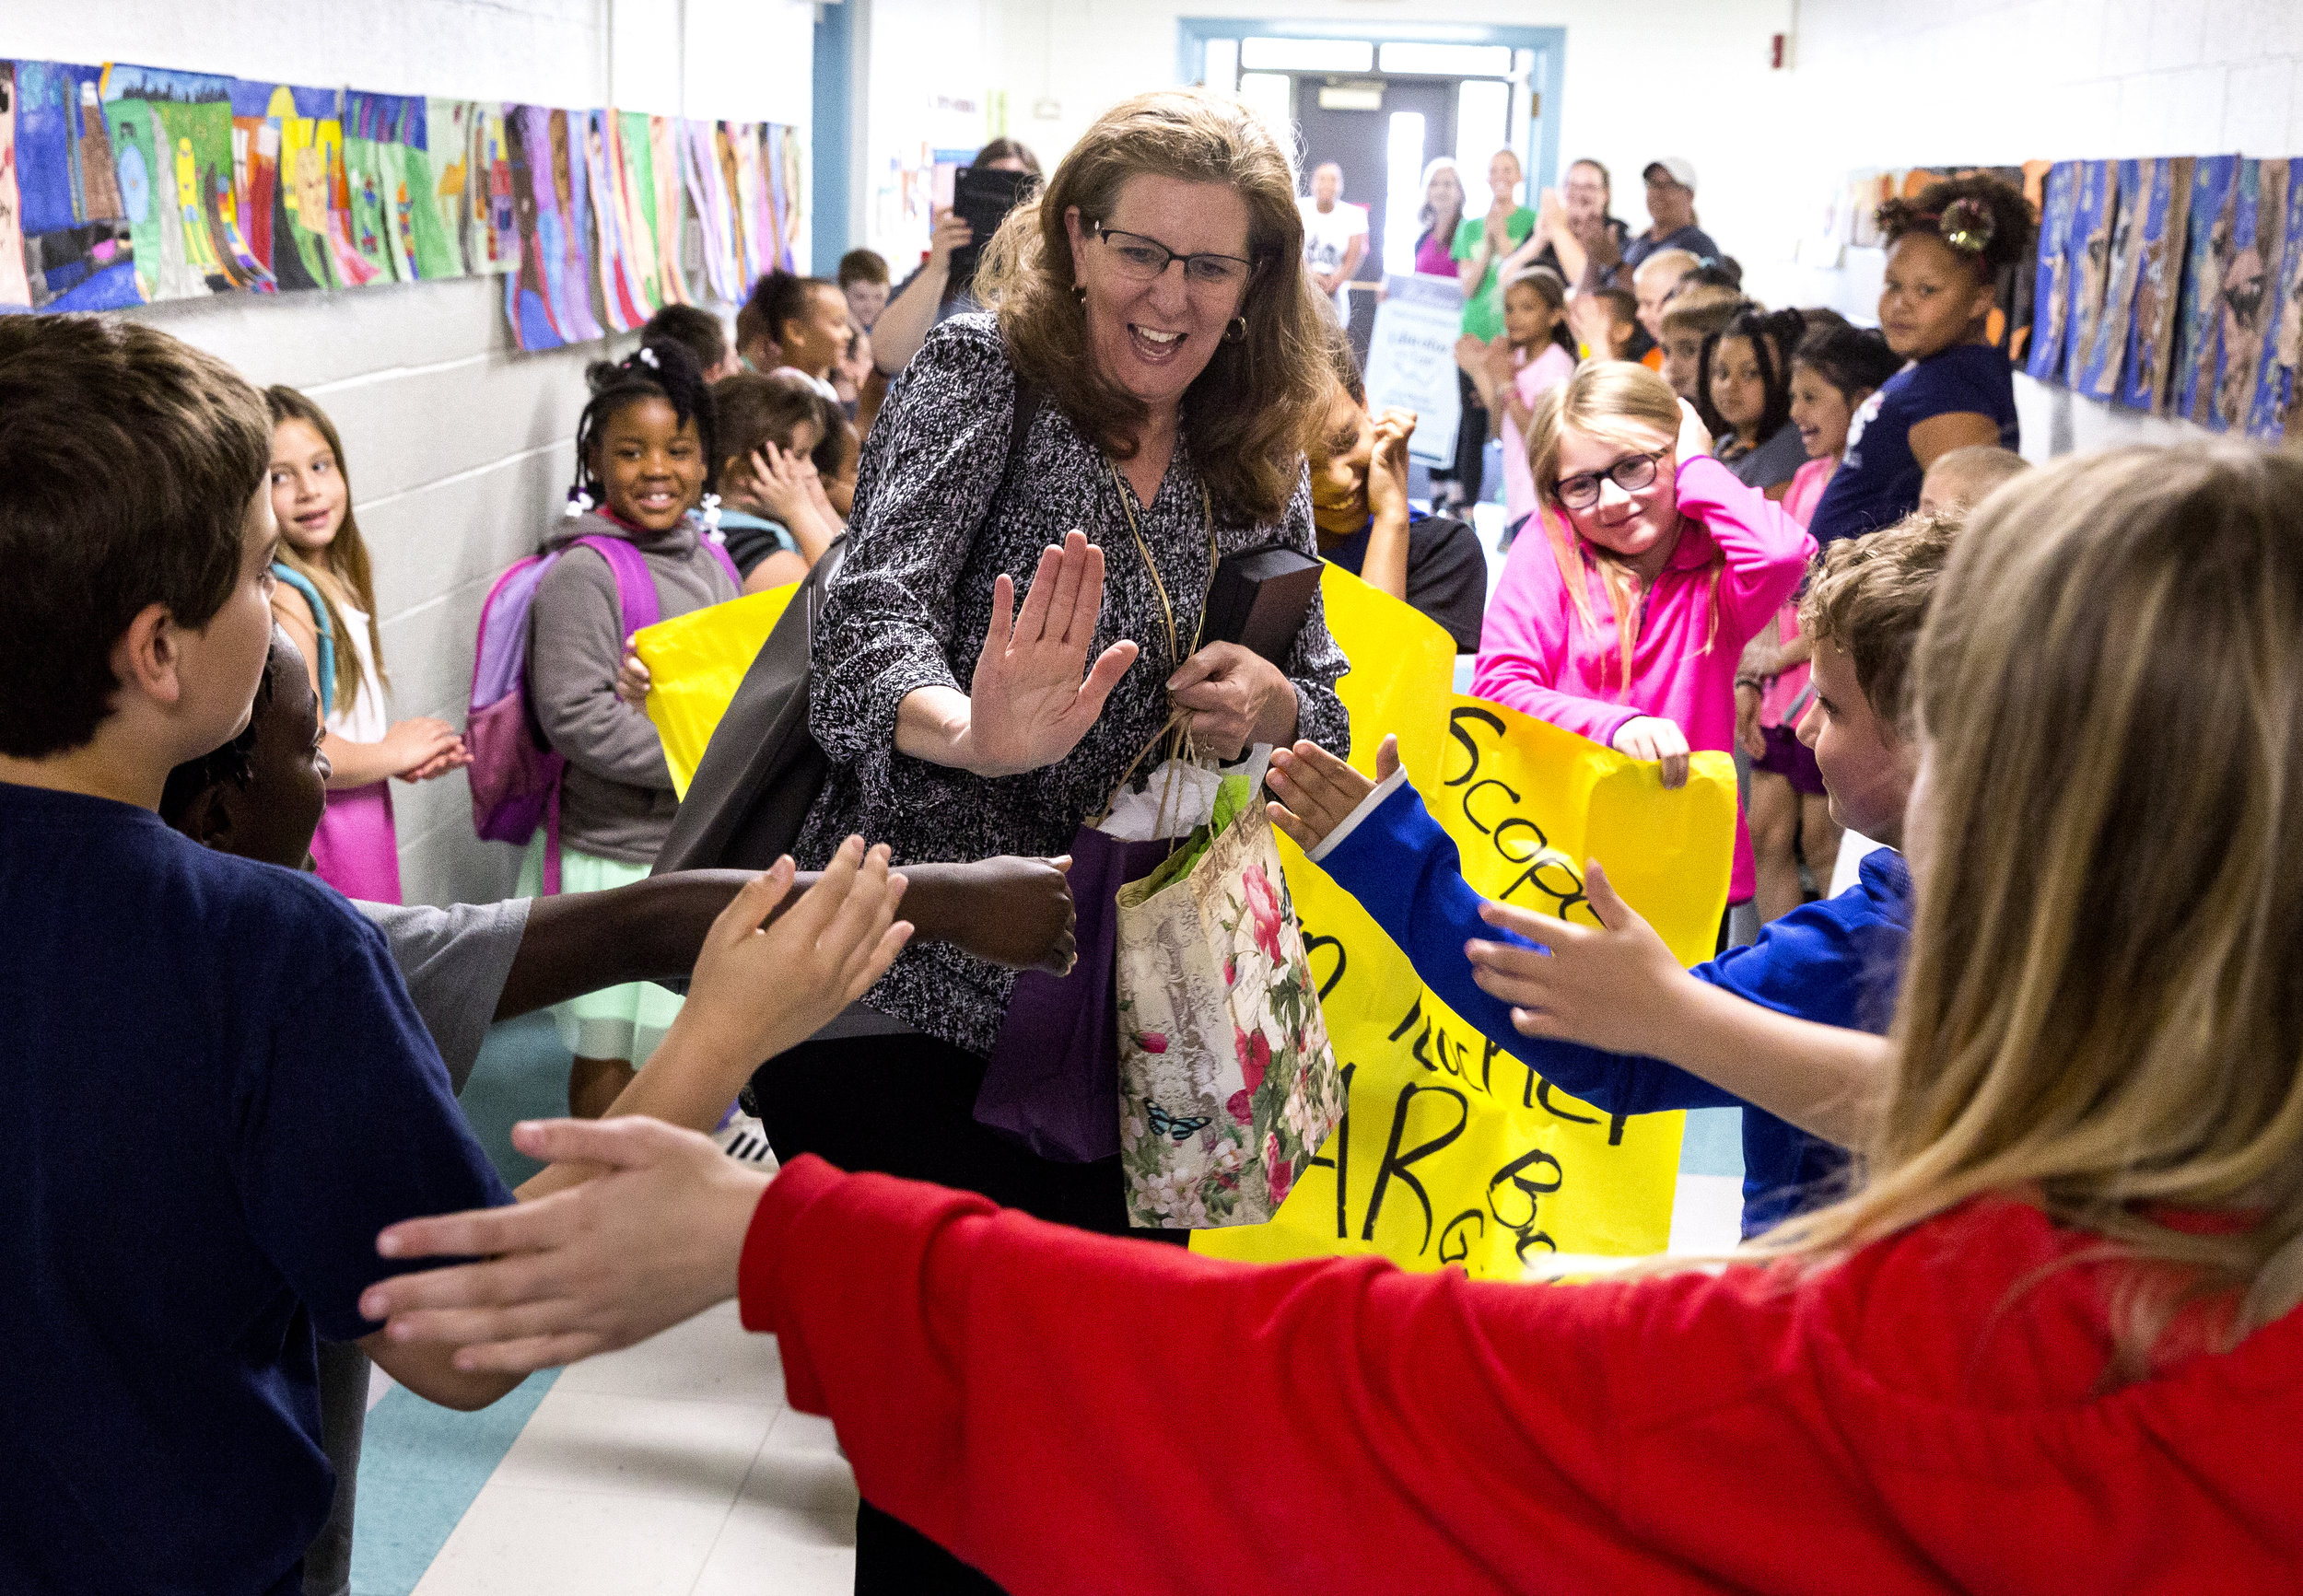 Fairview Elementary School literacy coach Lori Moore is greeted by students and staff when she returned to the school after being named the Horace Mann Educator of the Year Wednesday, May 9, 2018 at Fairview Elementary in Springfield, Ill. [Rich Saal/The State Journal-Register]